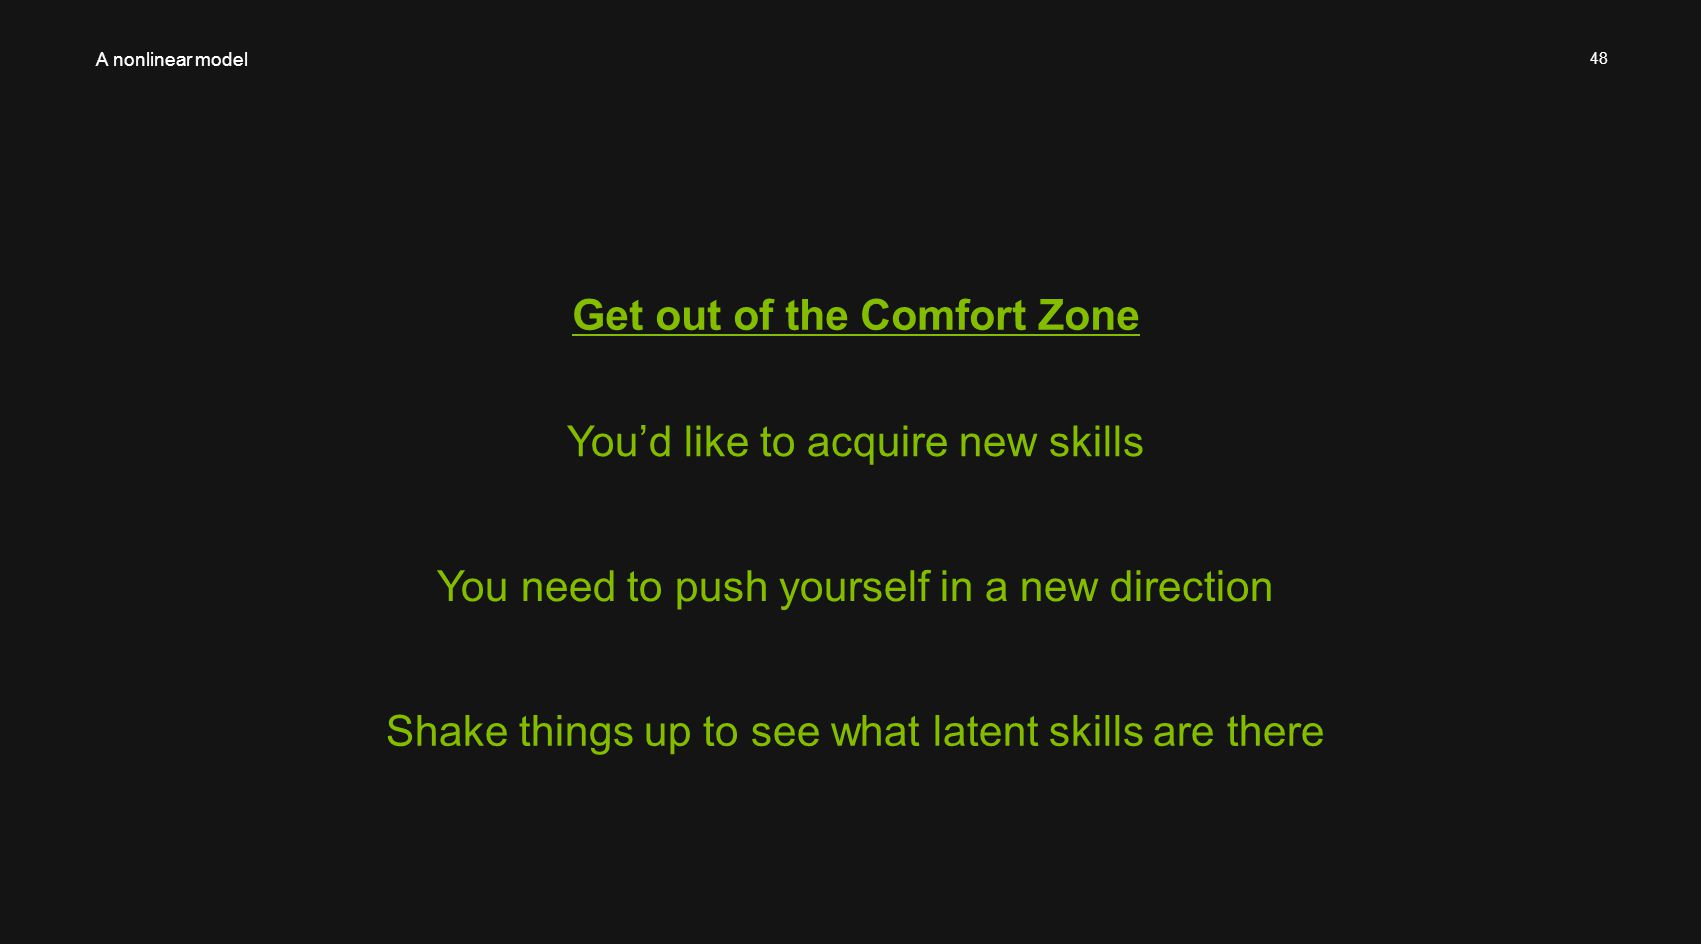 48 Get out of the Comfort Zone A nonlinear model You'd like to acquire new skills You need to push yourself in a new direction Shake things up to see